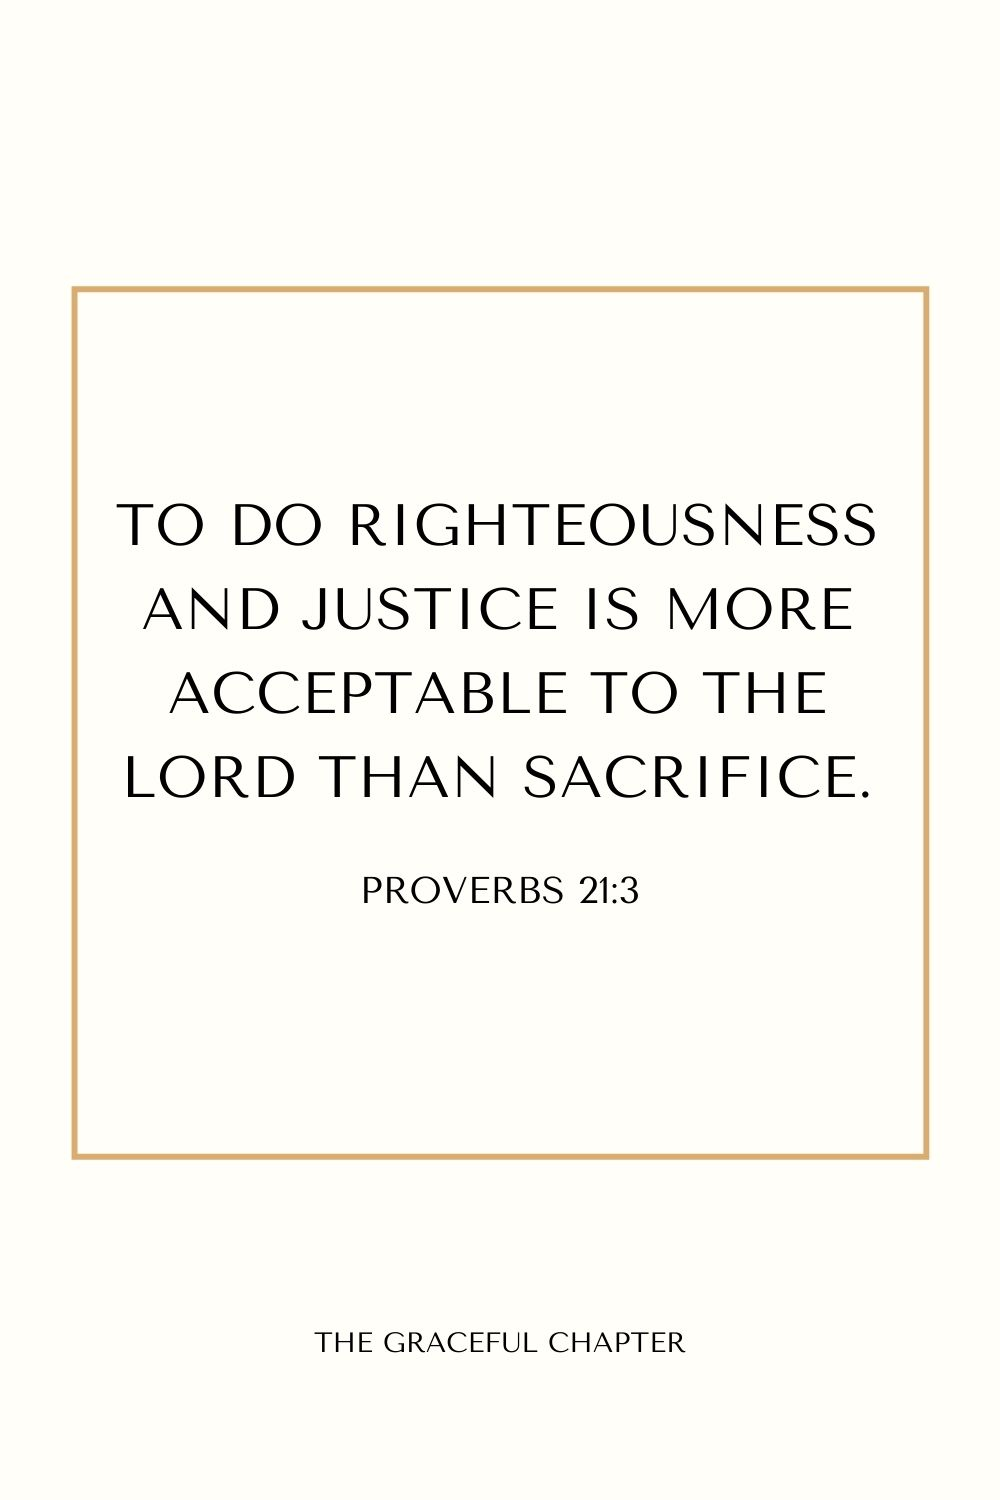 To do righteousness and justice  Is more acceptable to the Lord than sacrifice. Proverbs 21:3